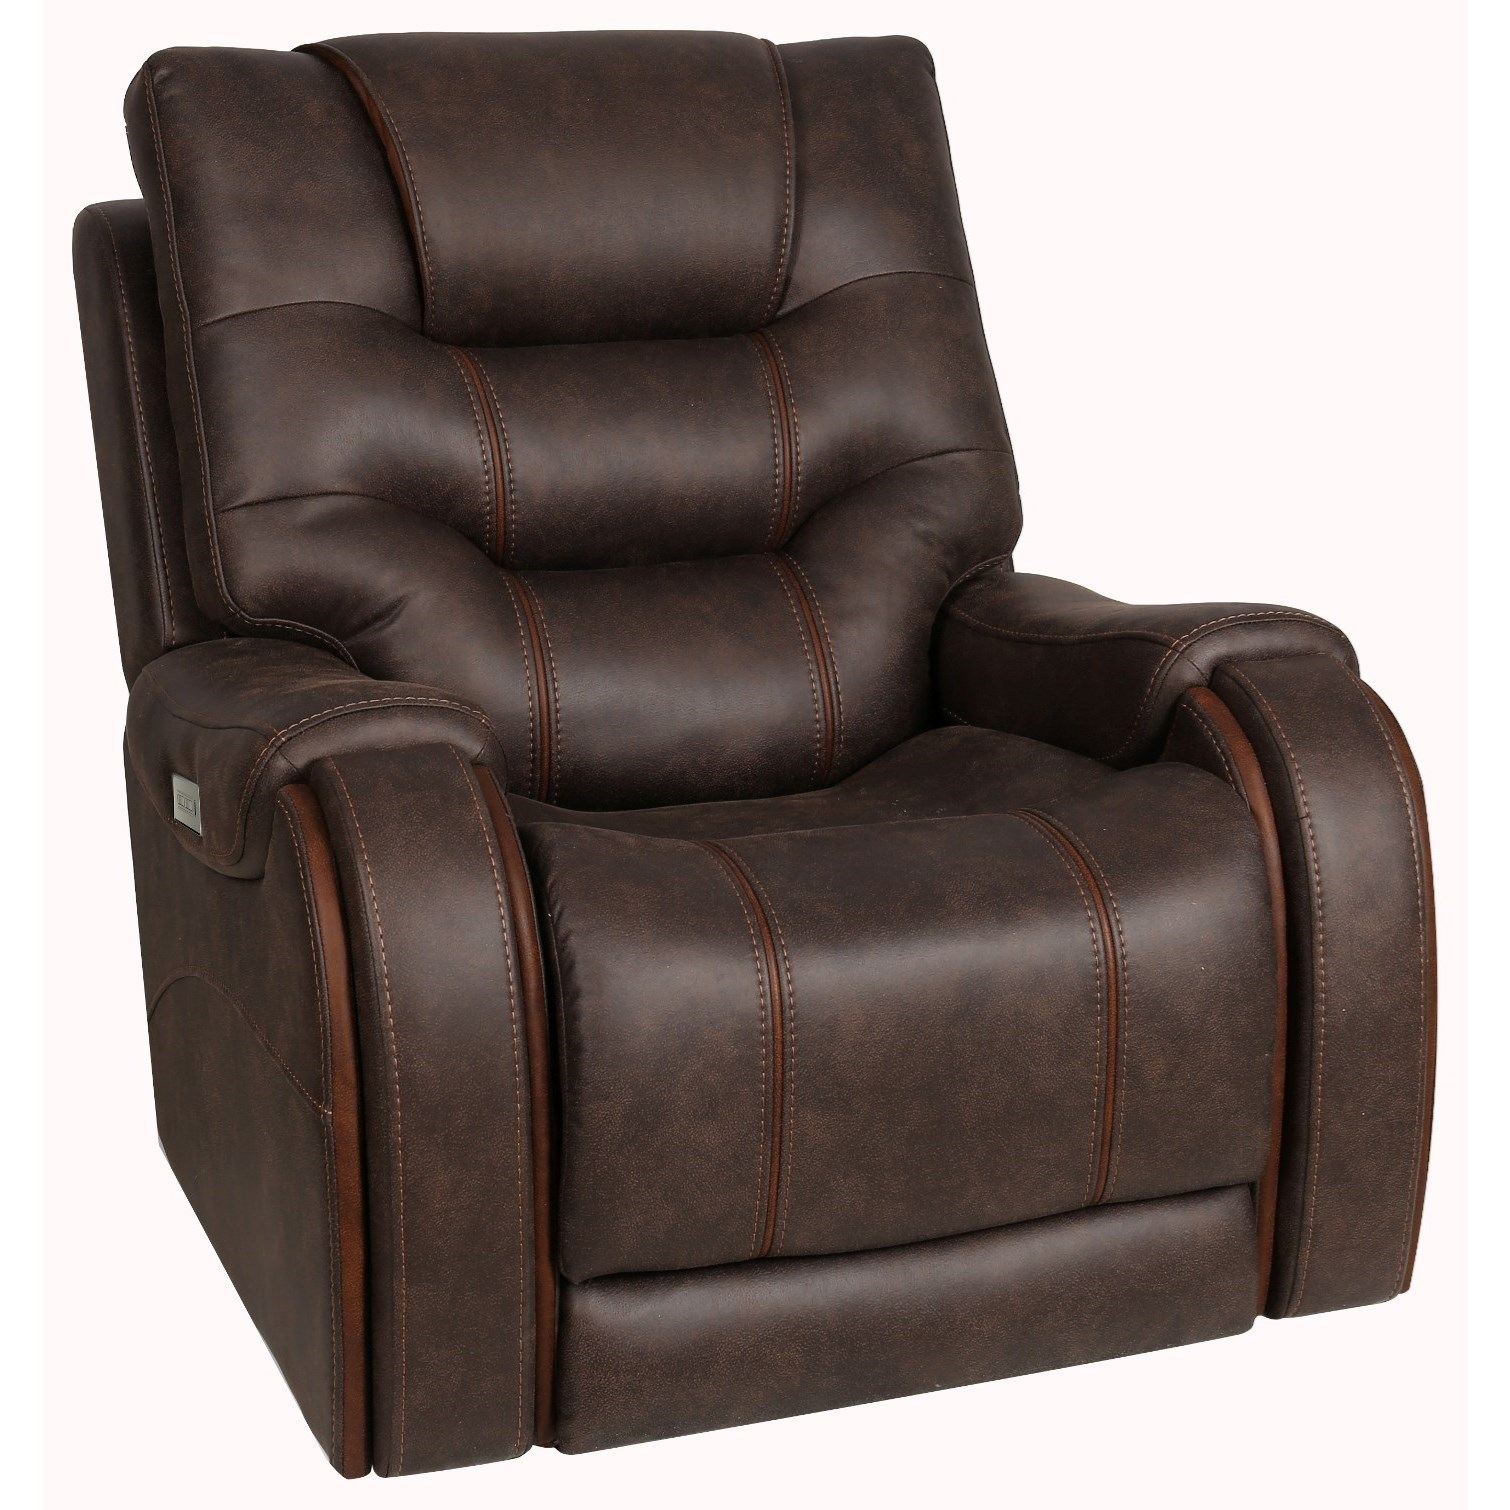 Warehouse M Power Recliner with Power Headrest by Moto Motion at Pilgrim Furniture City